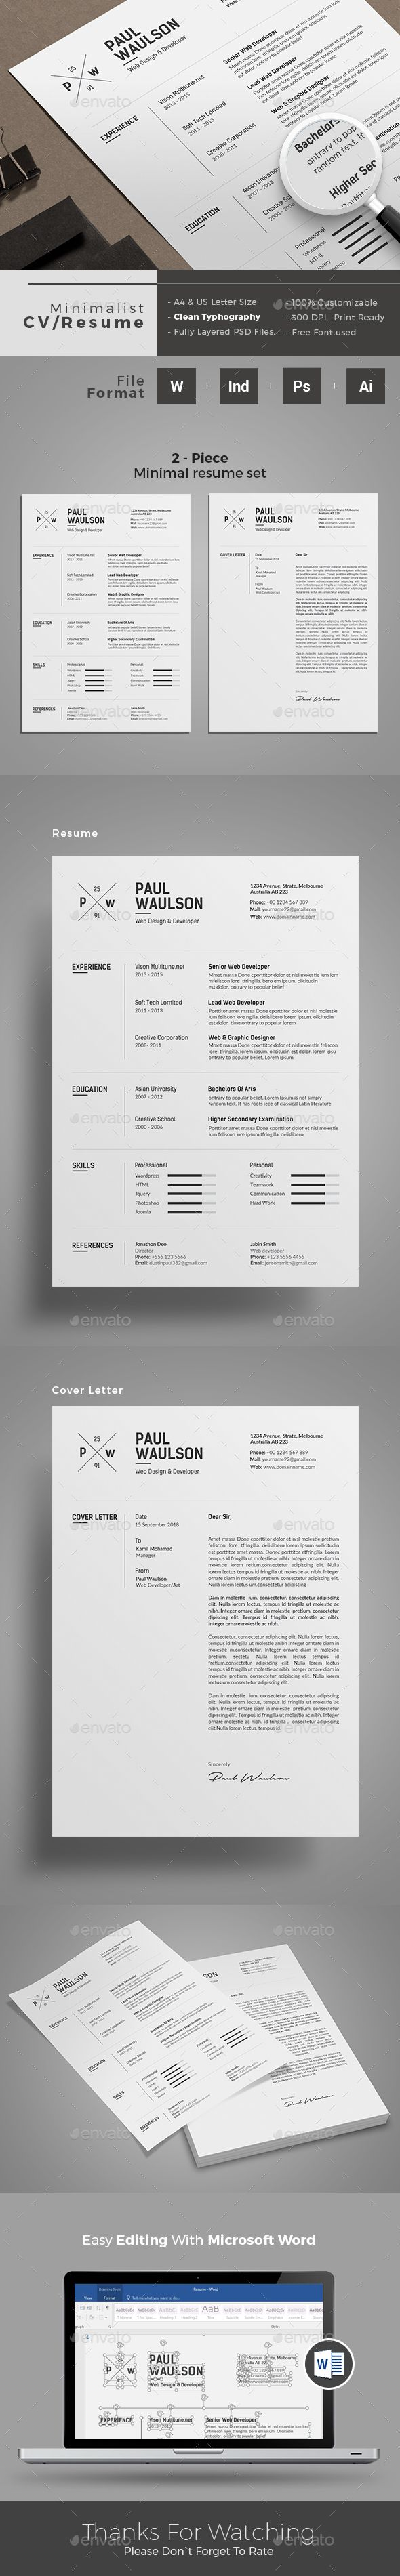 Clean Resume Template Minimal Design Typography Inspired Resume | IDML, INDD, PSD, AI and MS Word version available | Download https://graphicriver.net/item/resume/18024089?ref=themedevisers